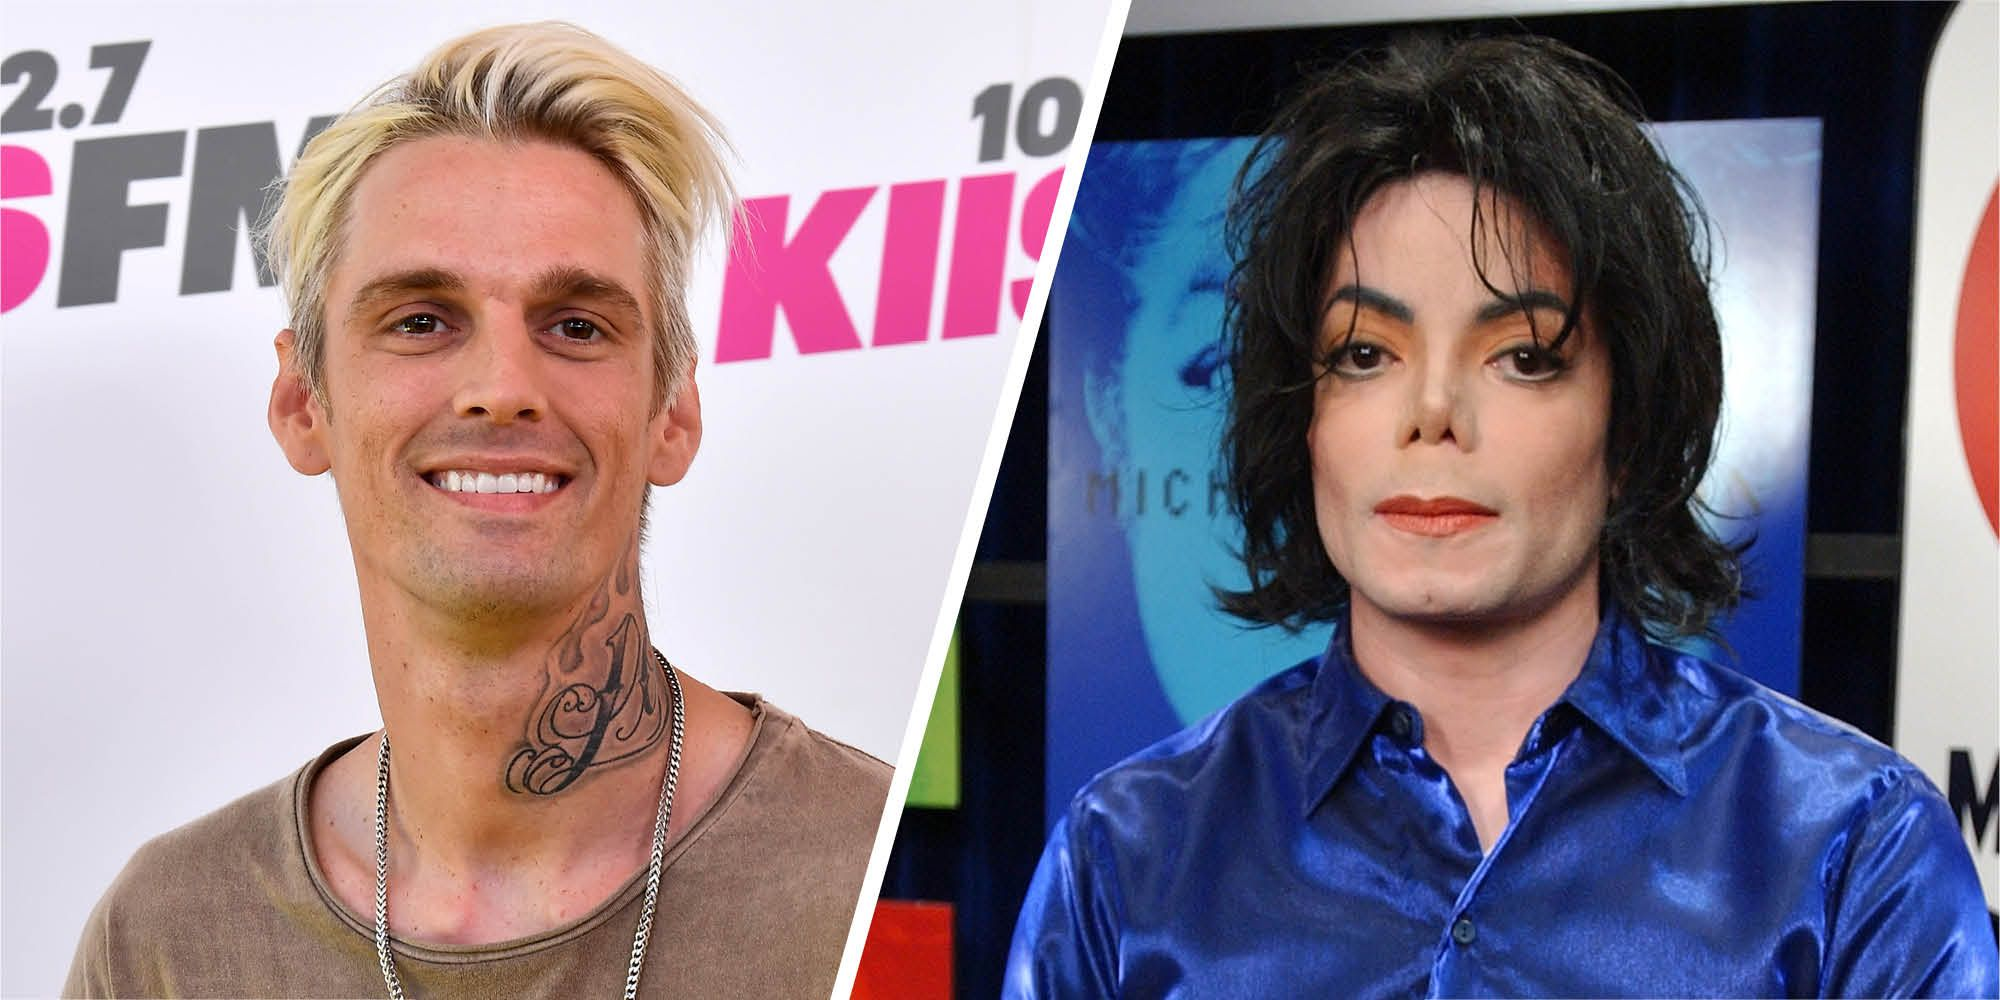 Aaron Carter defends Michael Jackson over Leaving Neverland allegations